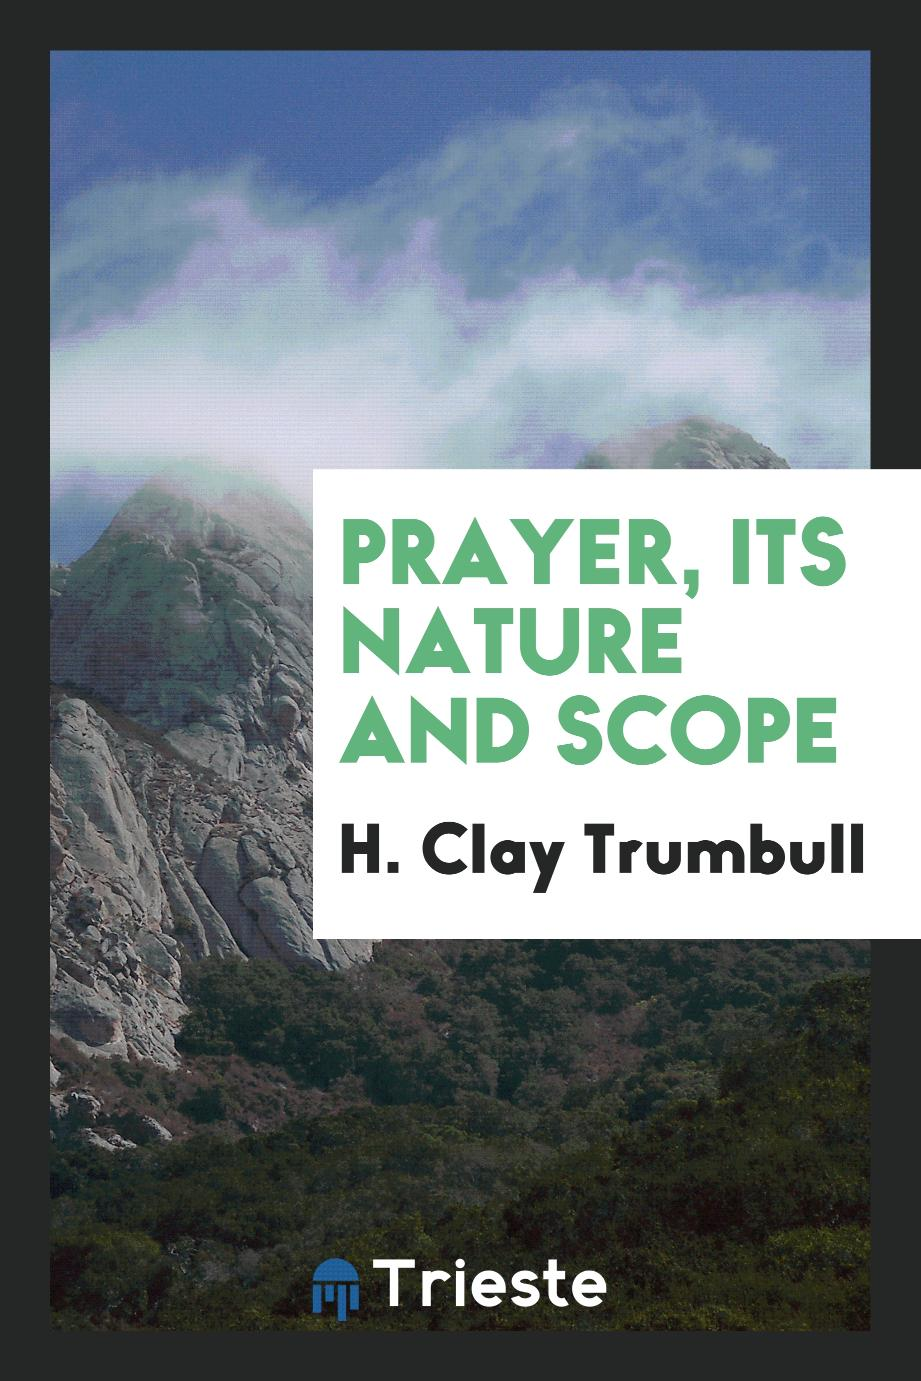 Prayer, Its Nature and Scope